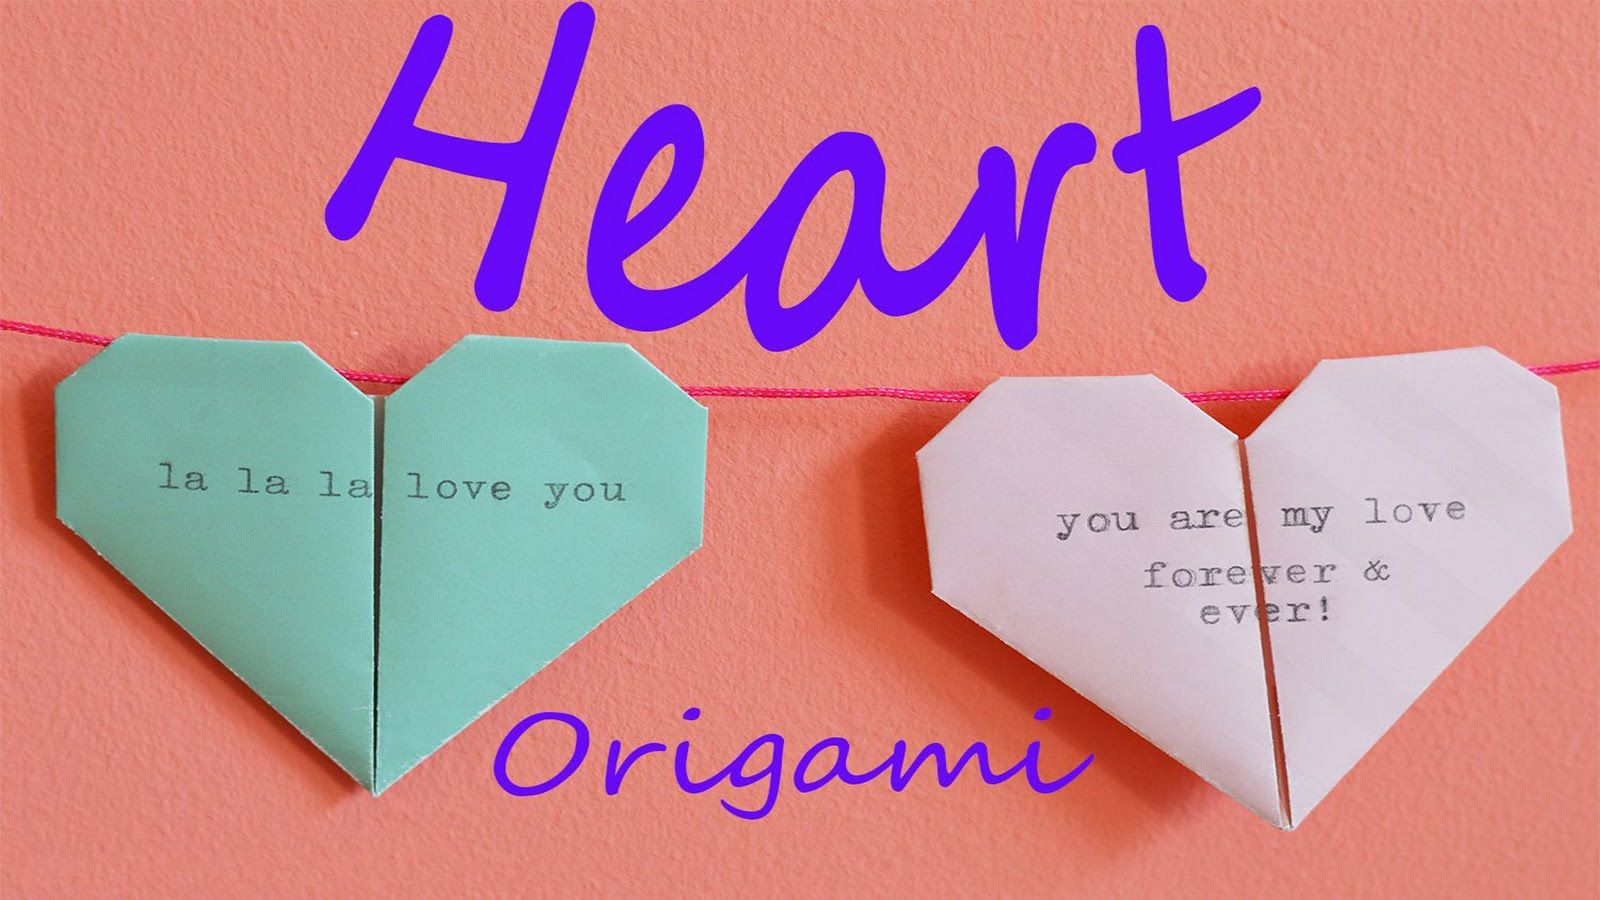 Origami heart instruction how to make an origami heart very heart instruction video very cool origami jeuxipadfo Image collections